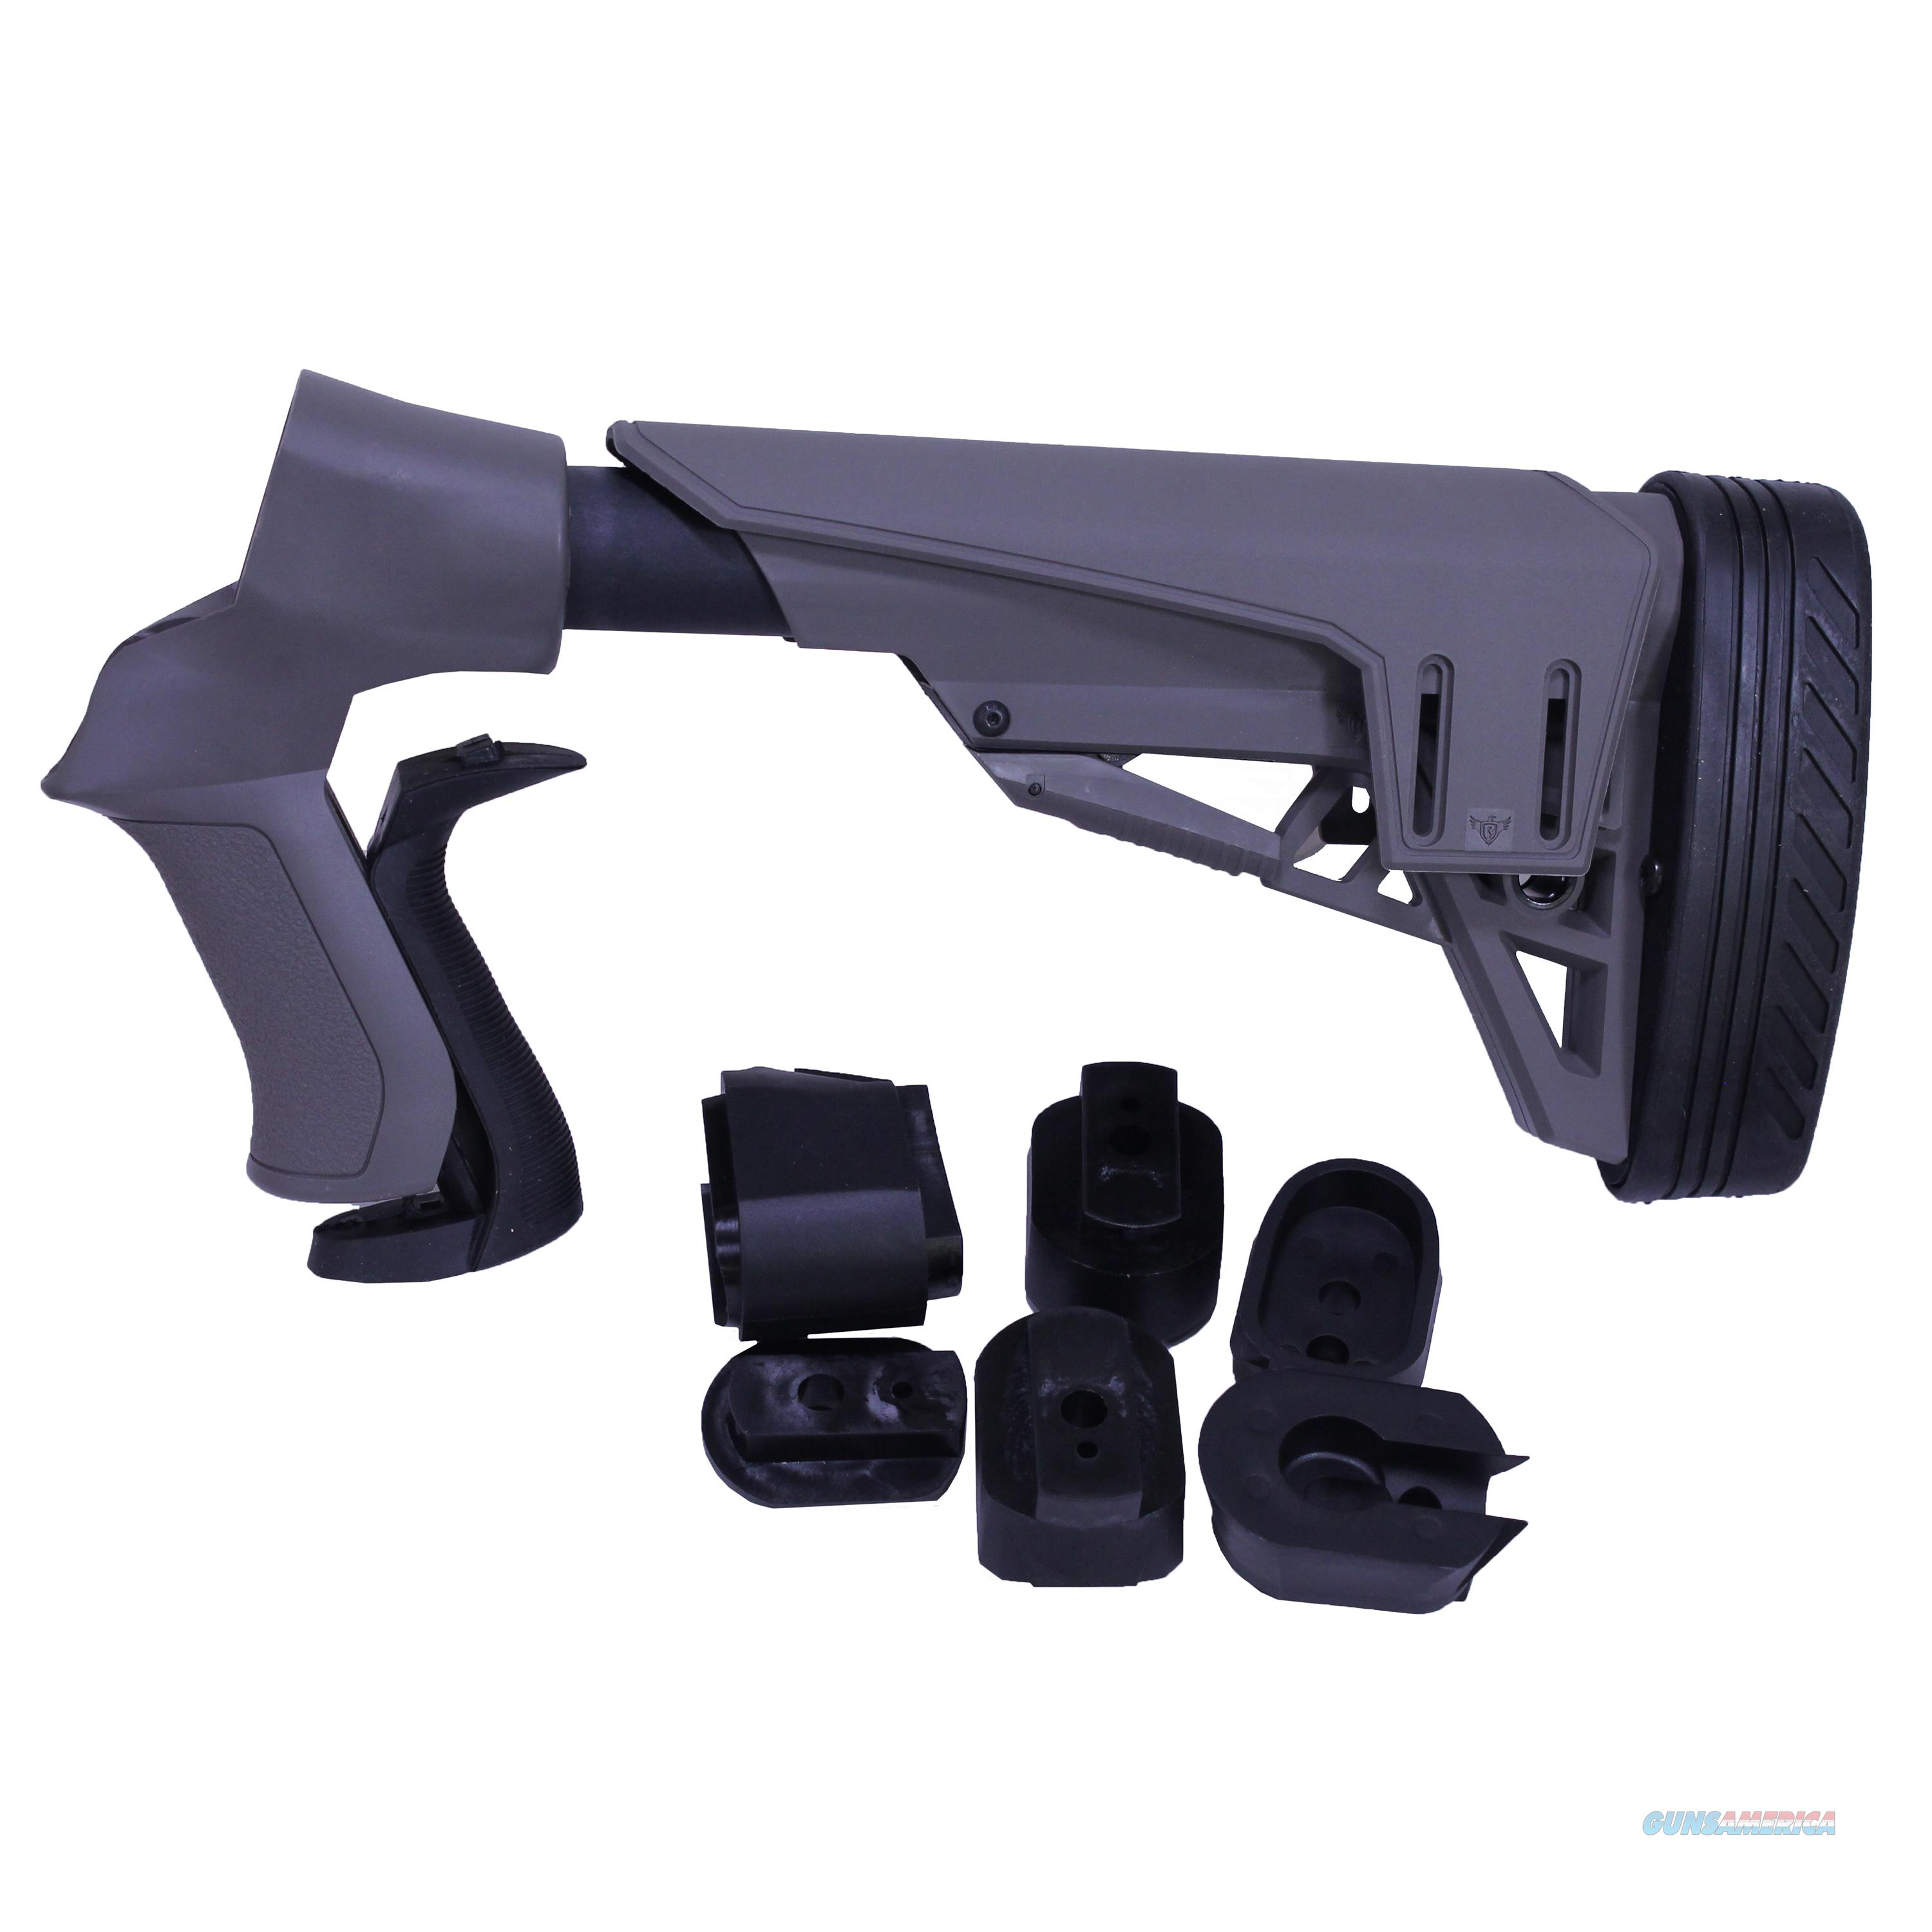 Advanced Technology Stevens 320 12 Gauge Shotgun T3 Tactlite 6 Pos Stock Destroyer Gray B.1.40.2007  Non-Guns > Gun Parts > Misc > Rifles